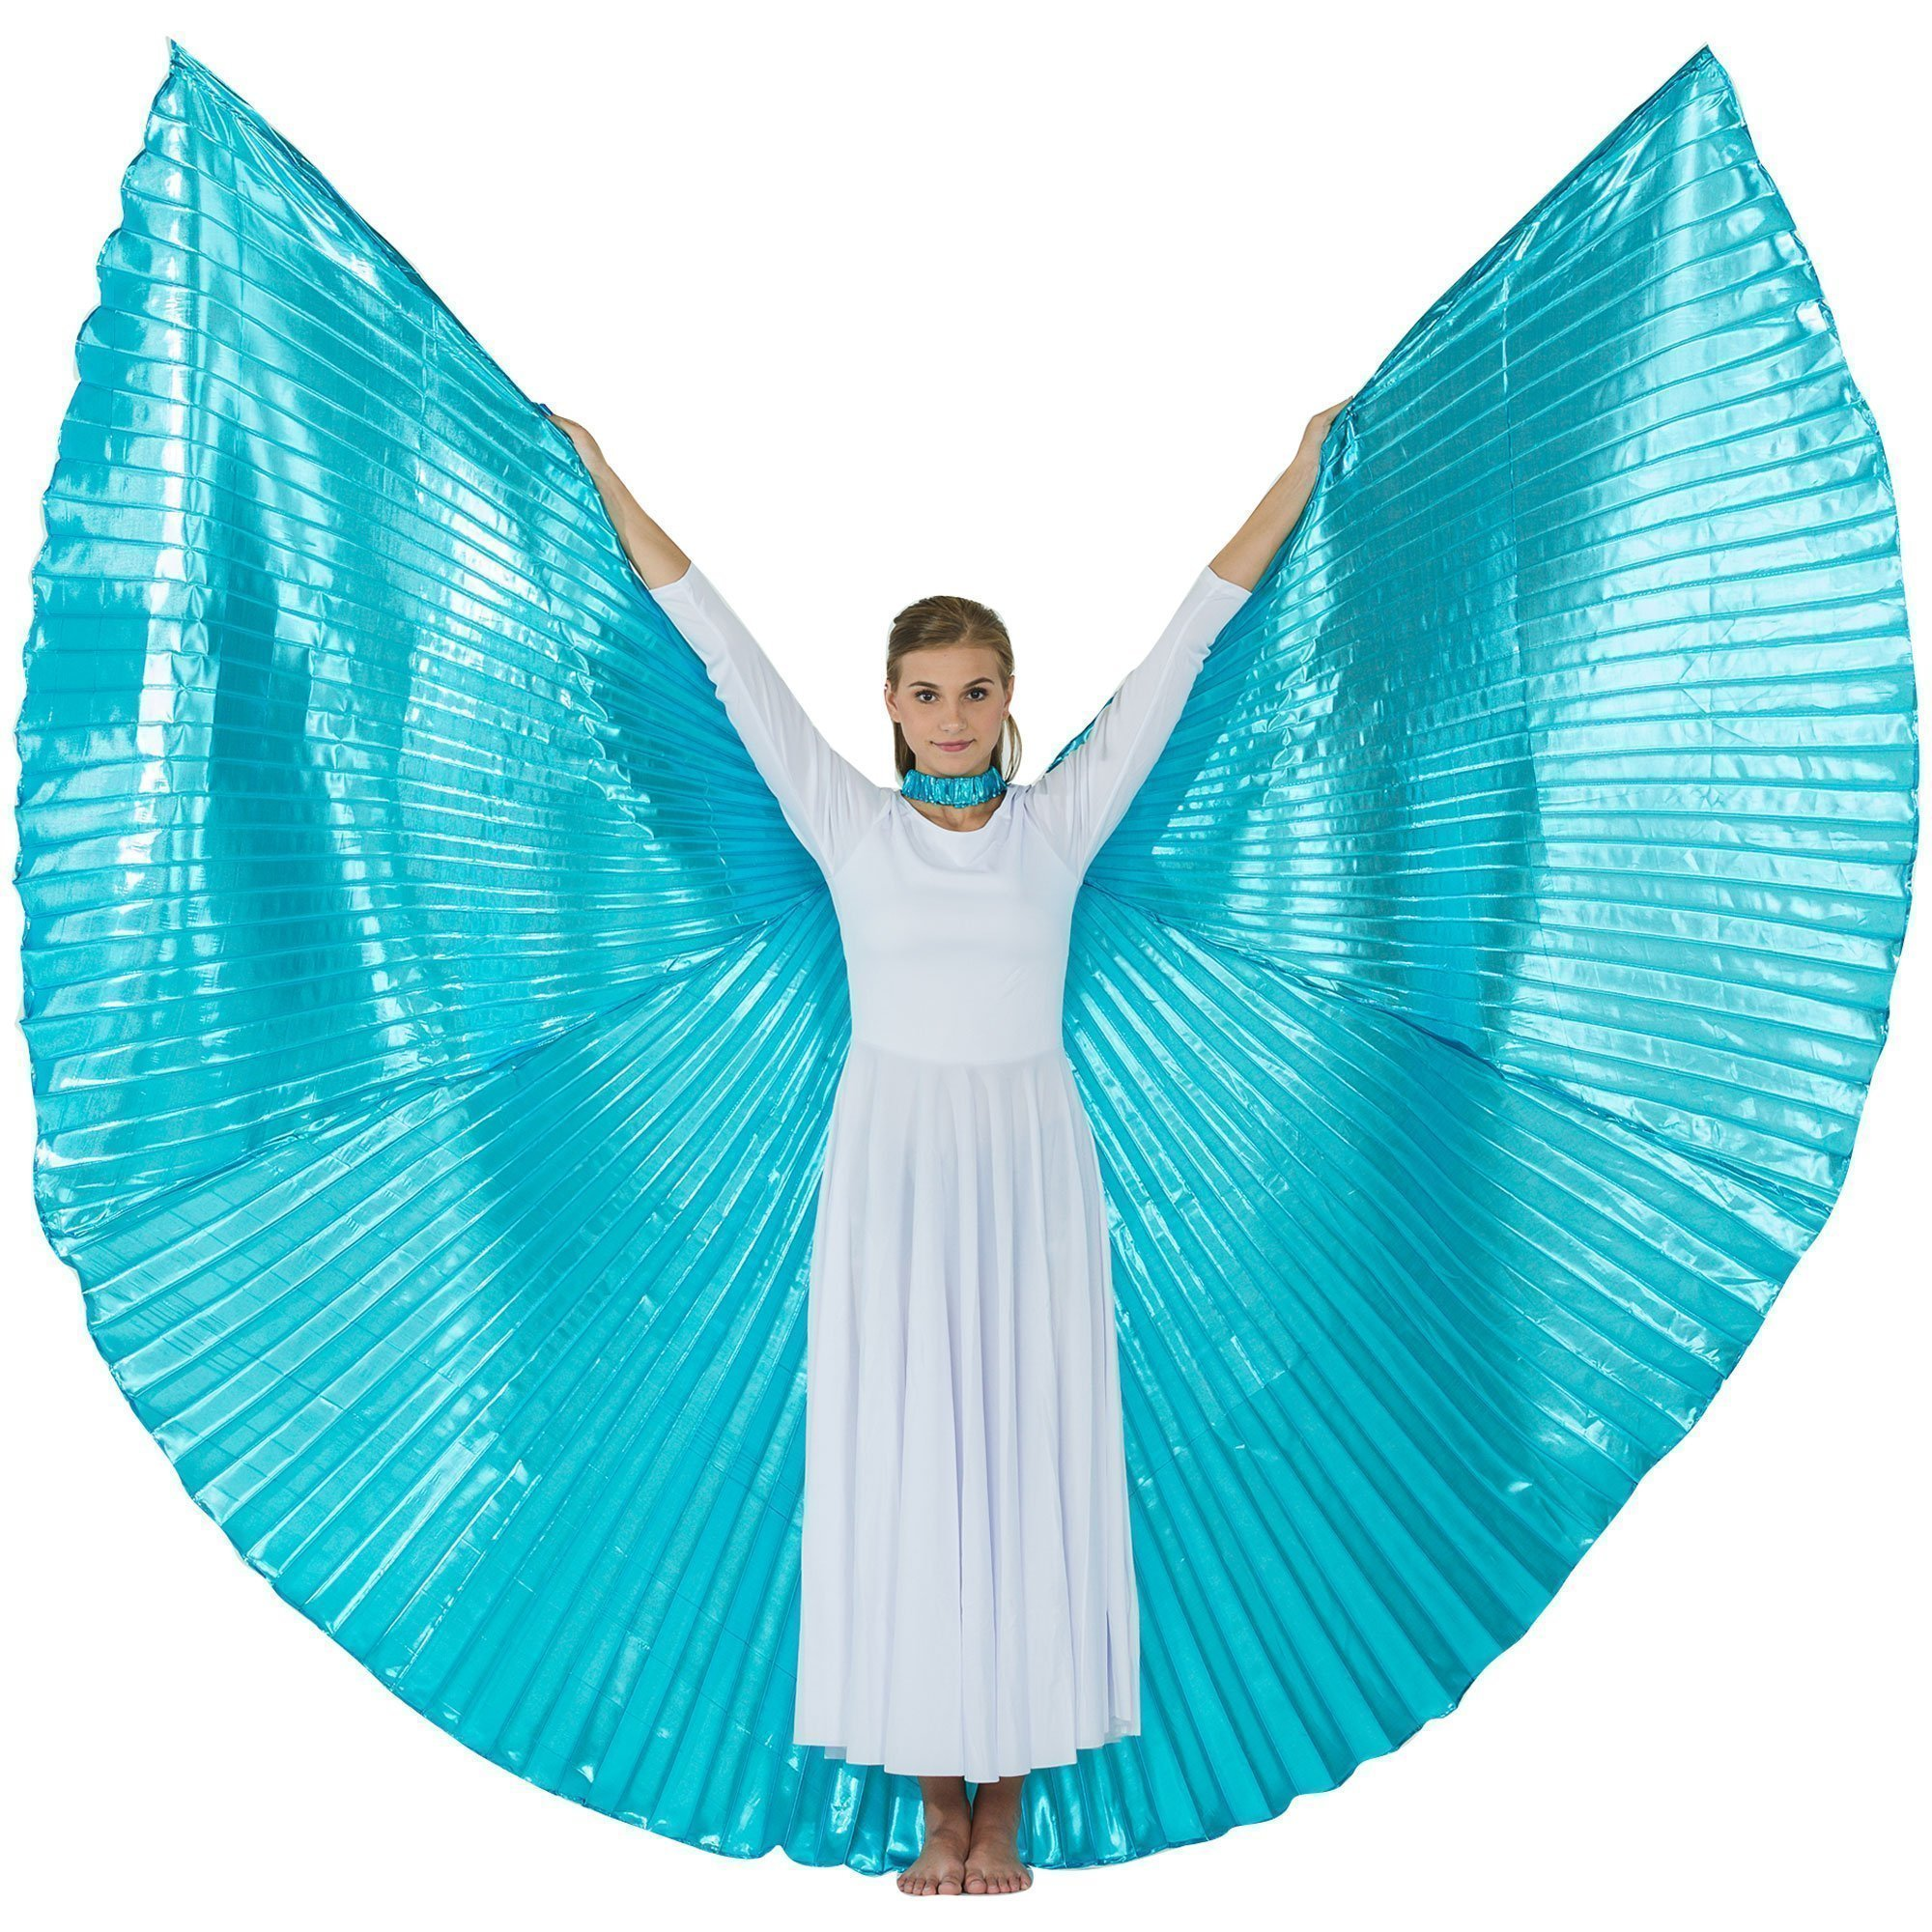 Danzcue Solid Turquoise Worship Angel Wing